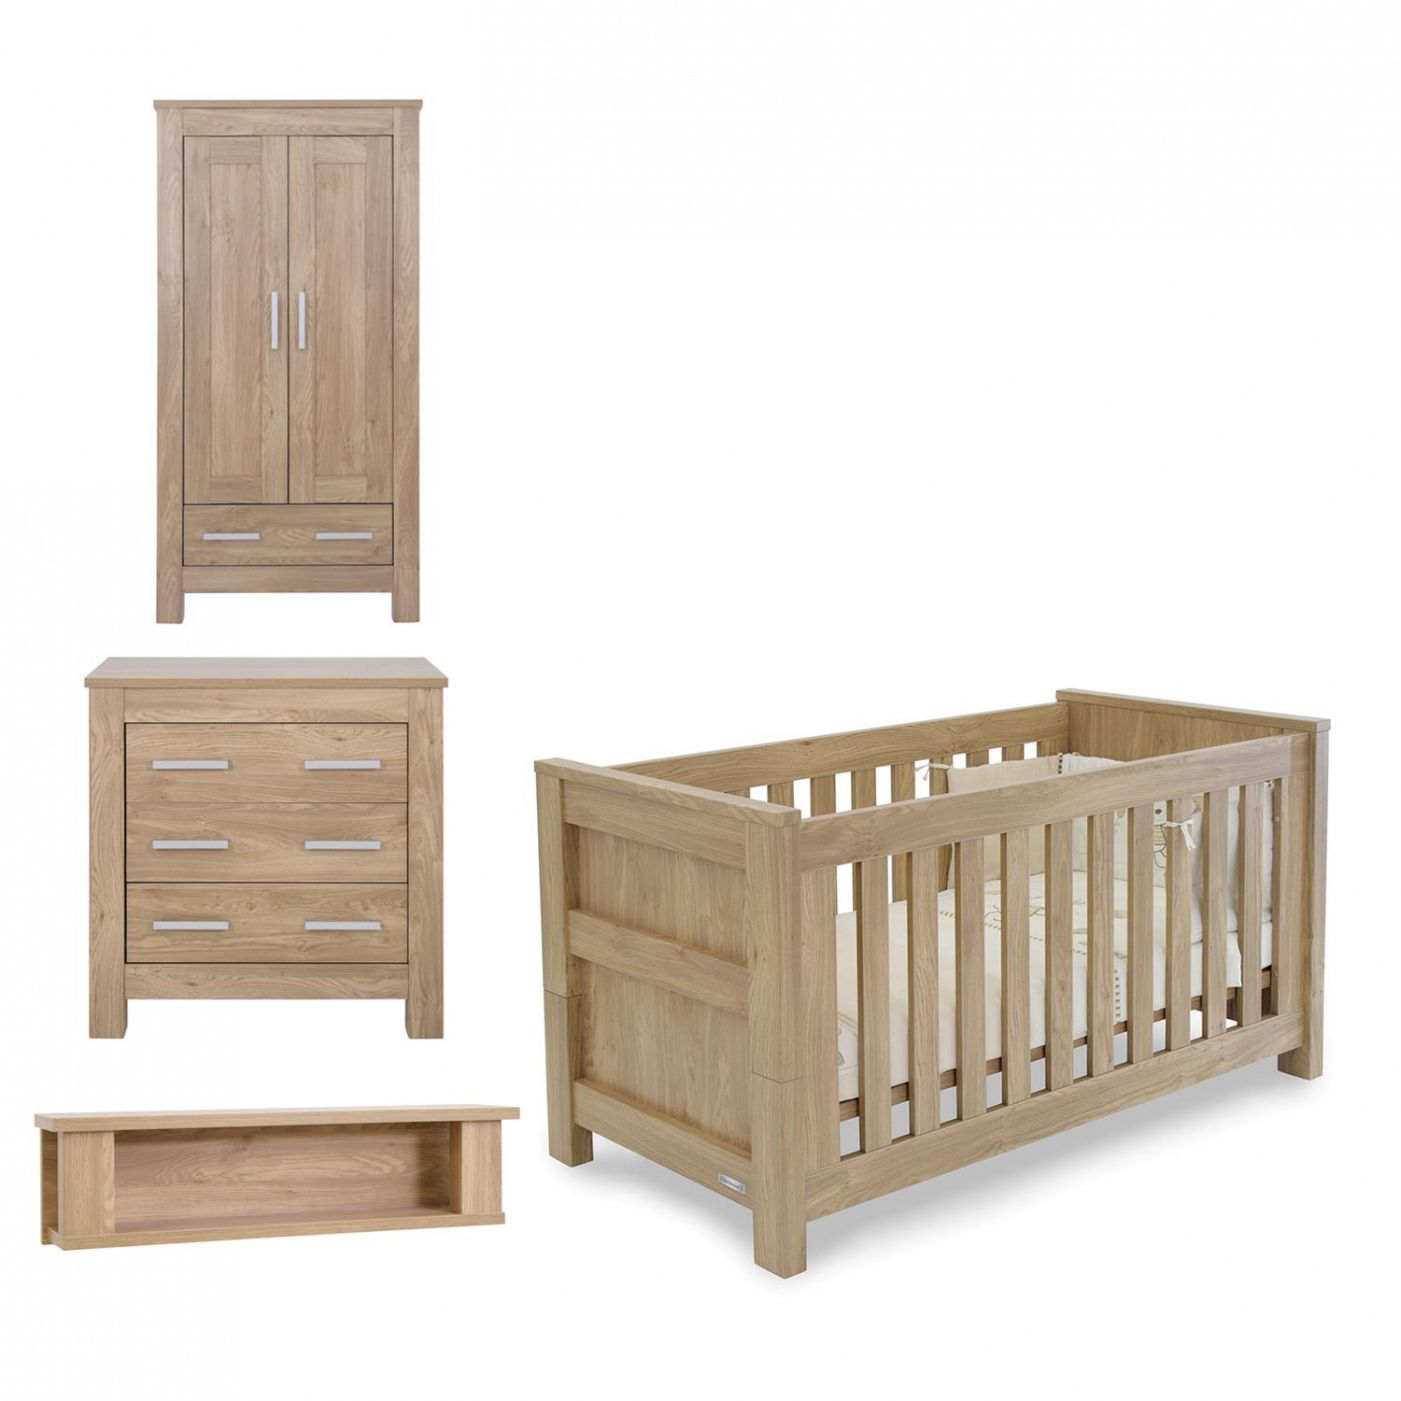 30 Oak Baby Furniture Sets   Interior Design Bedroom Color Schemes Check  More At Http: